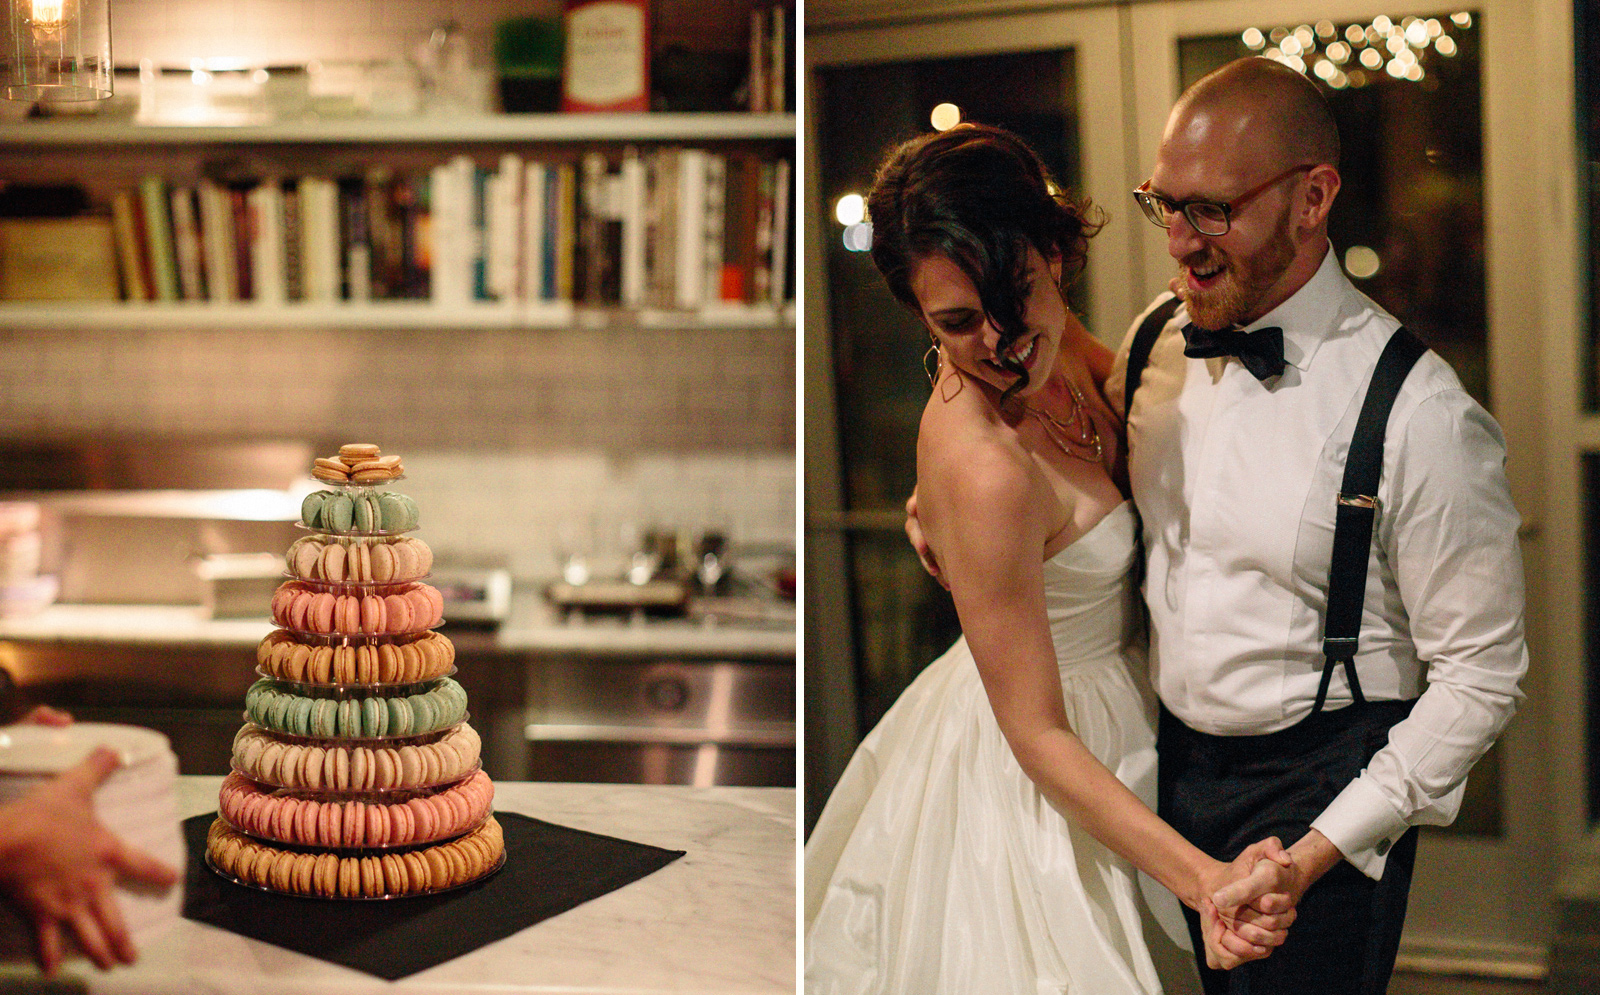 Coo-Hills-Wedding-Photographer-Downtown-Denver-Rebecc-and-Aaron-48.jpg